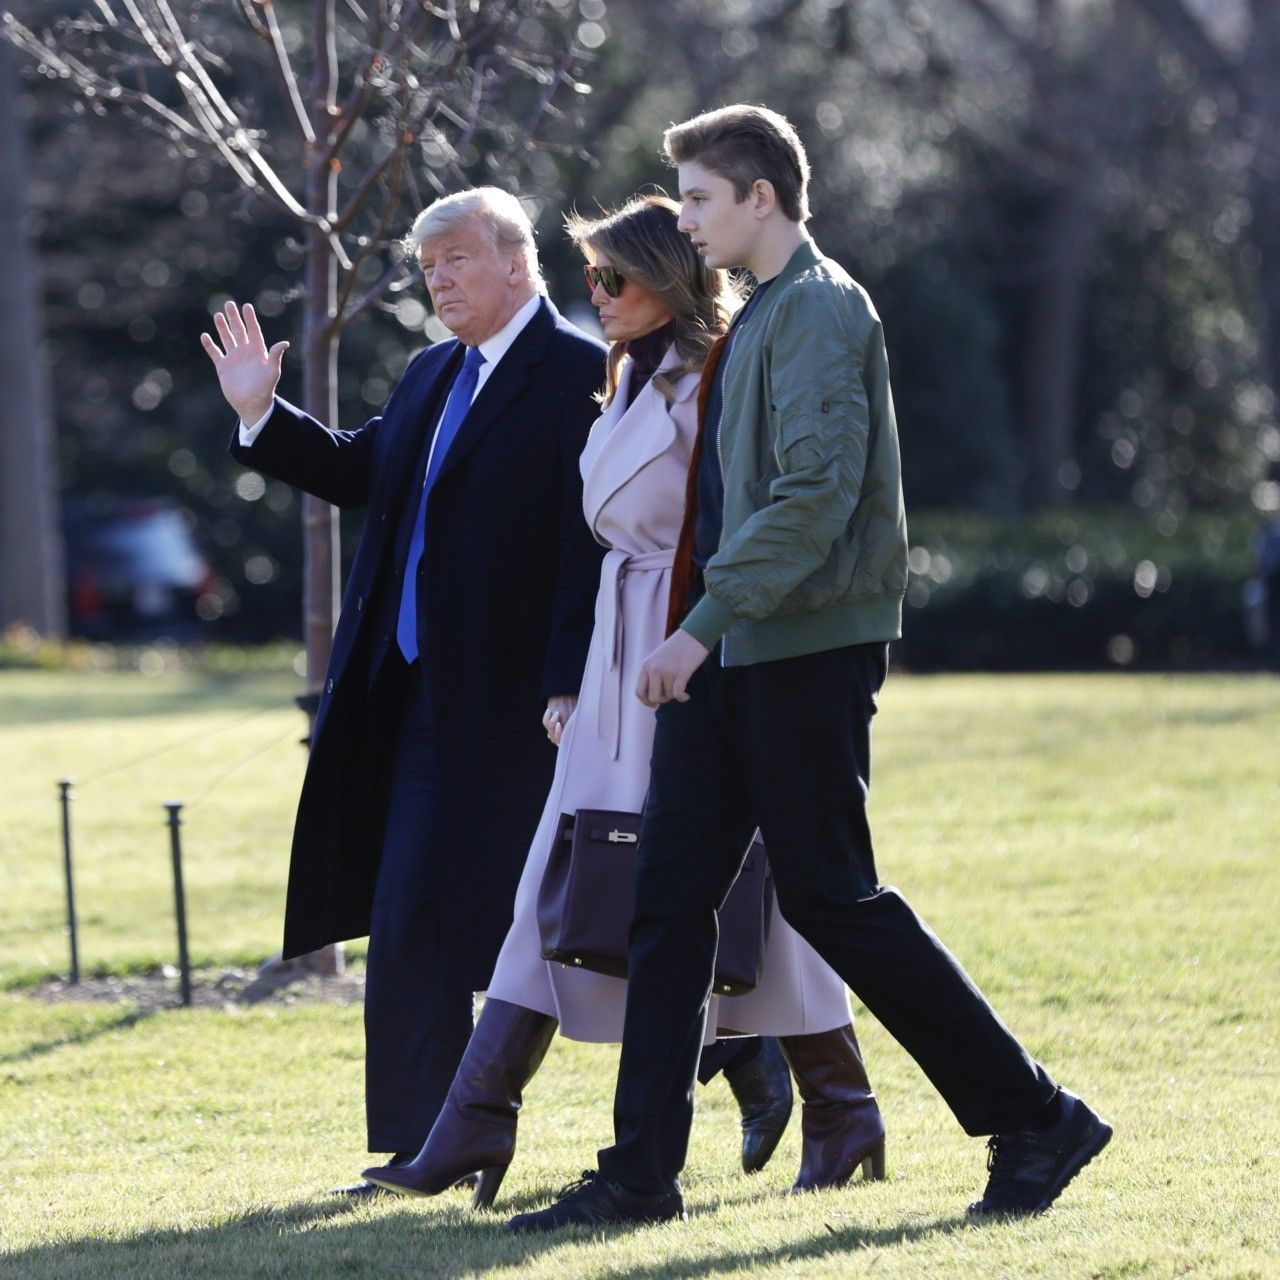 Fashion Notes Melania Trump Is Chic In Lilac Ralph Lauren Bordeaux Hermes In 2020 First Lady Melania Trump Melania Trump Donald And Melania Trump